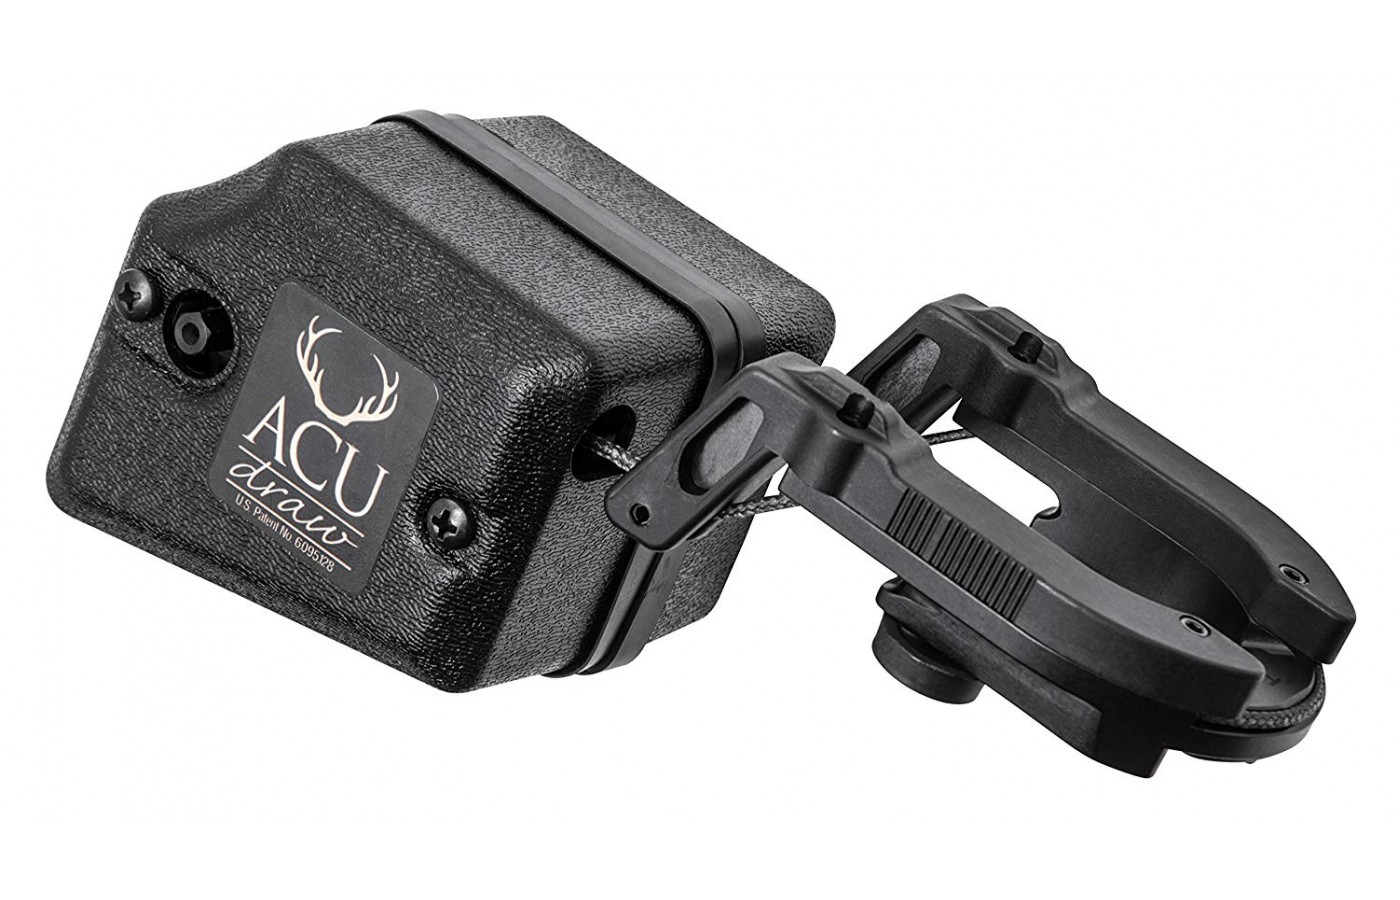 Integration of the stock with ACUdraw creates a manageable, heavy-duty crossbow.